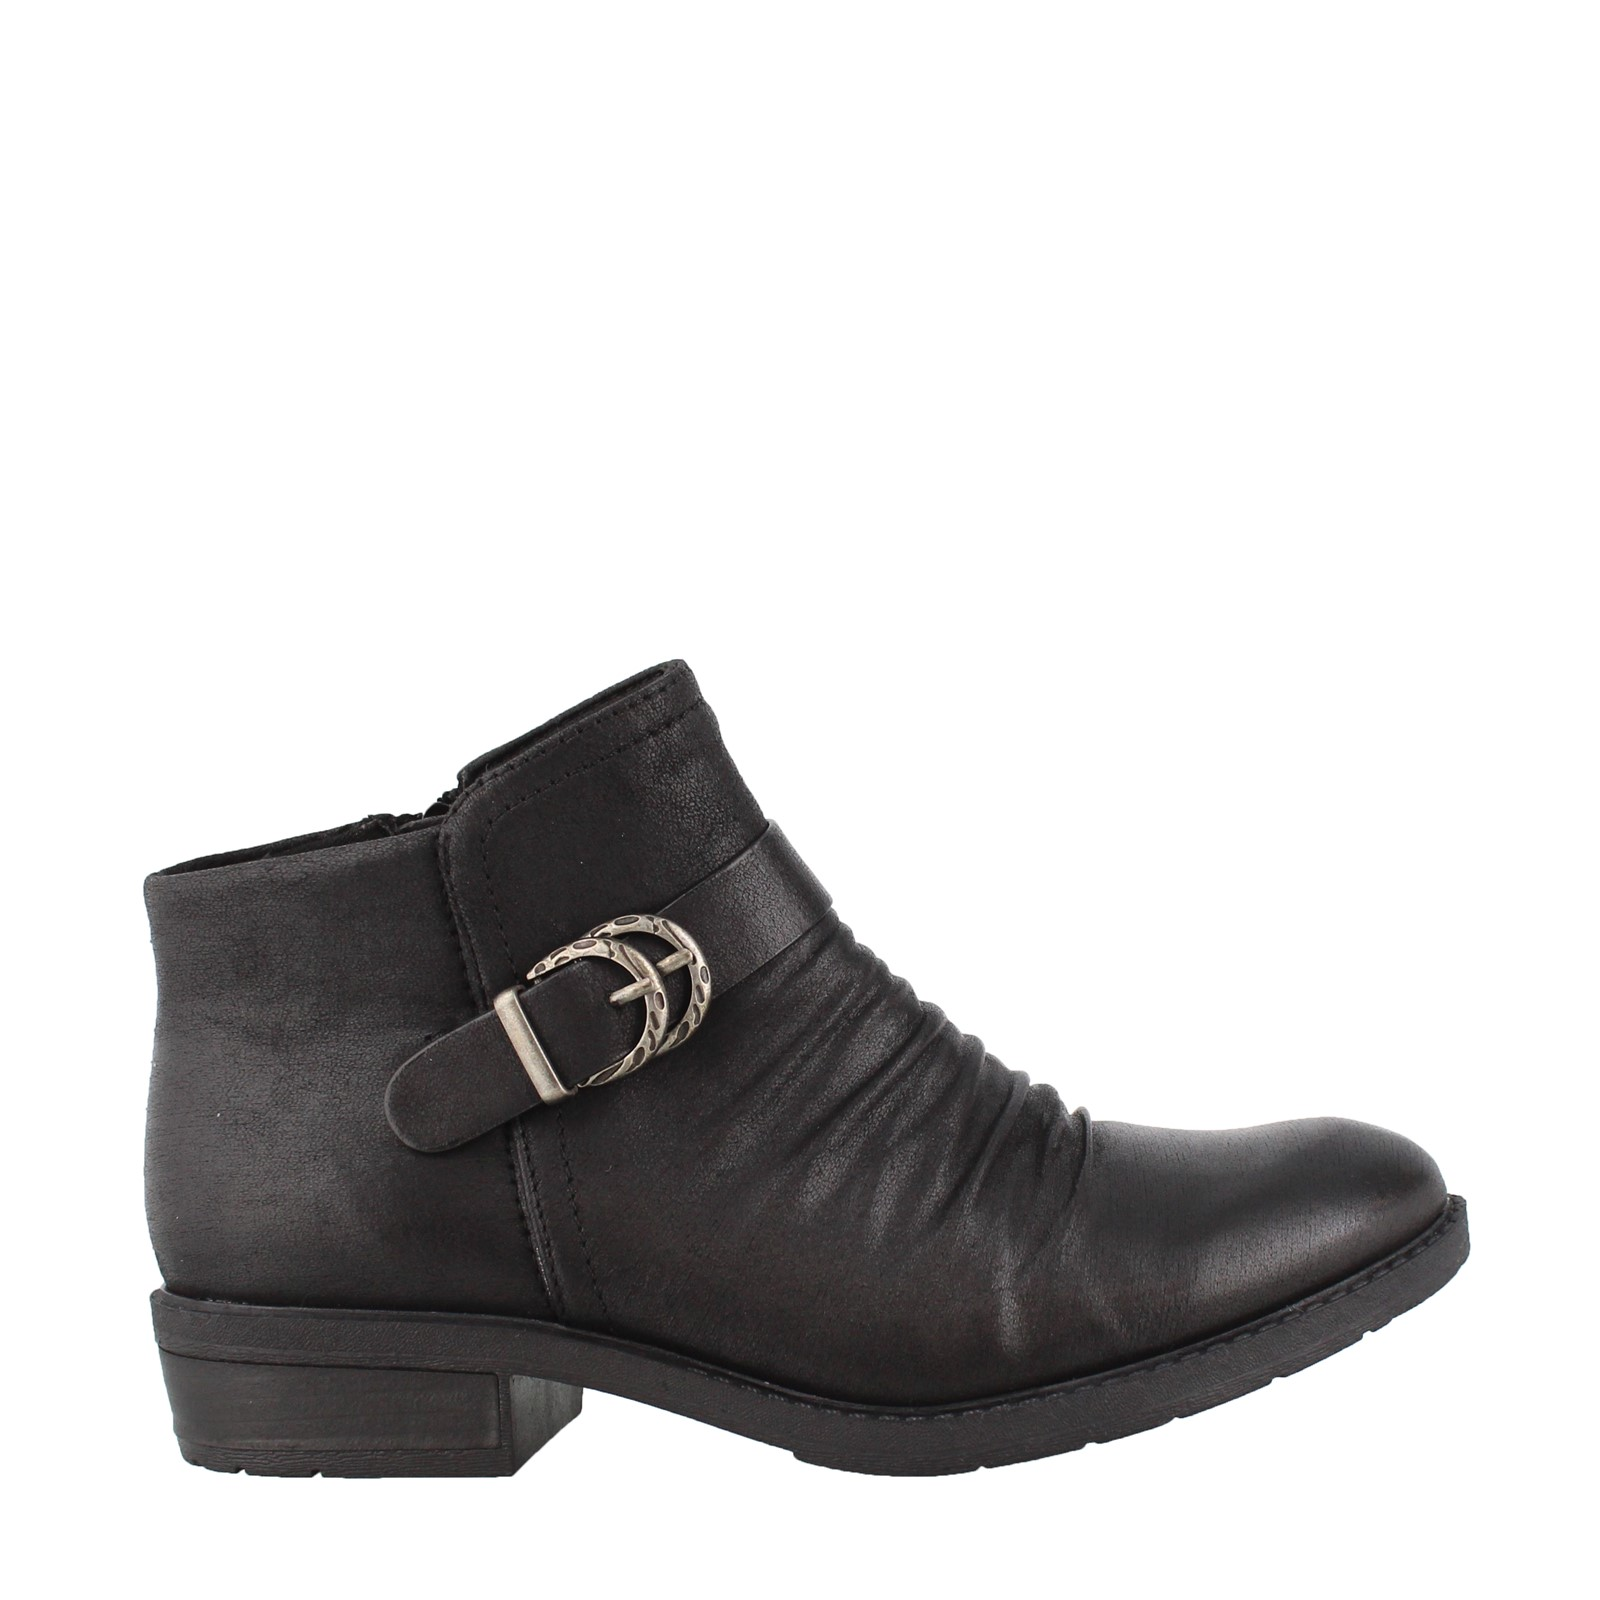 Women's Bare Traps, Yulia Ankle Boots